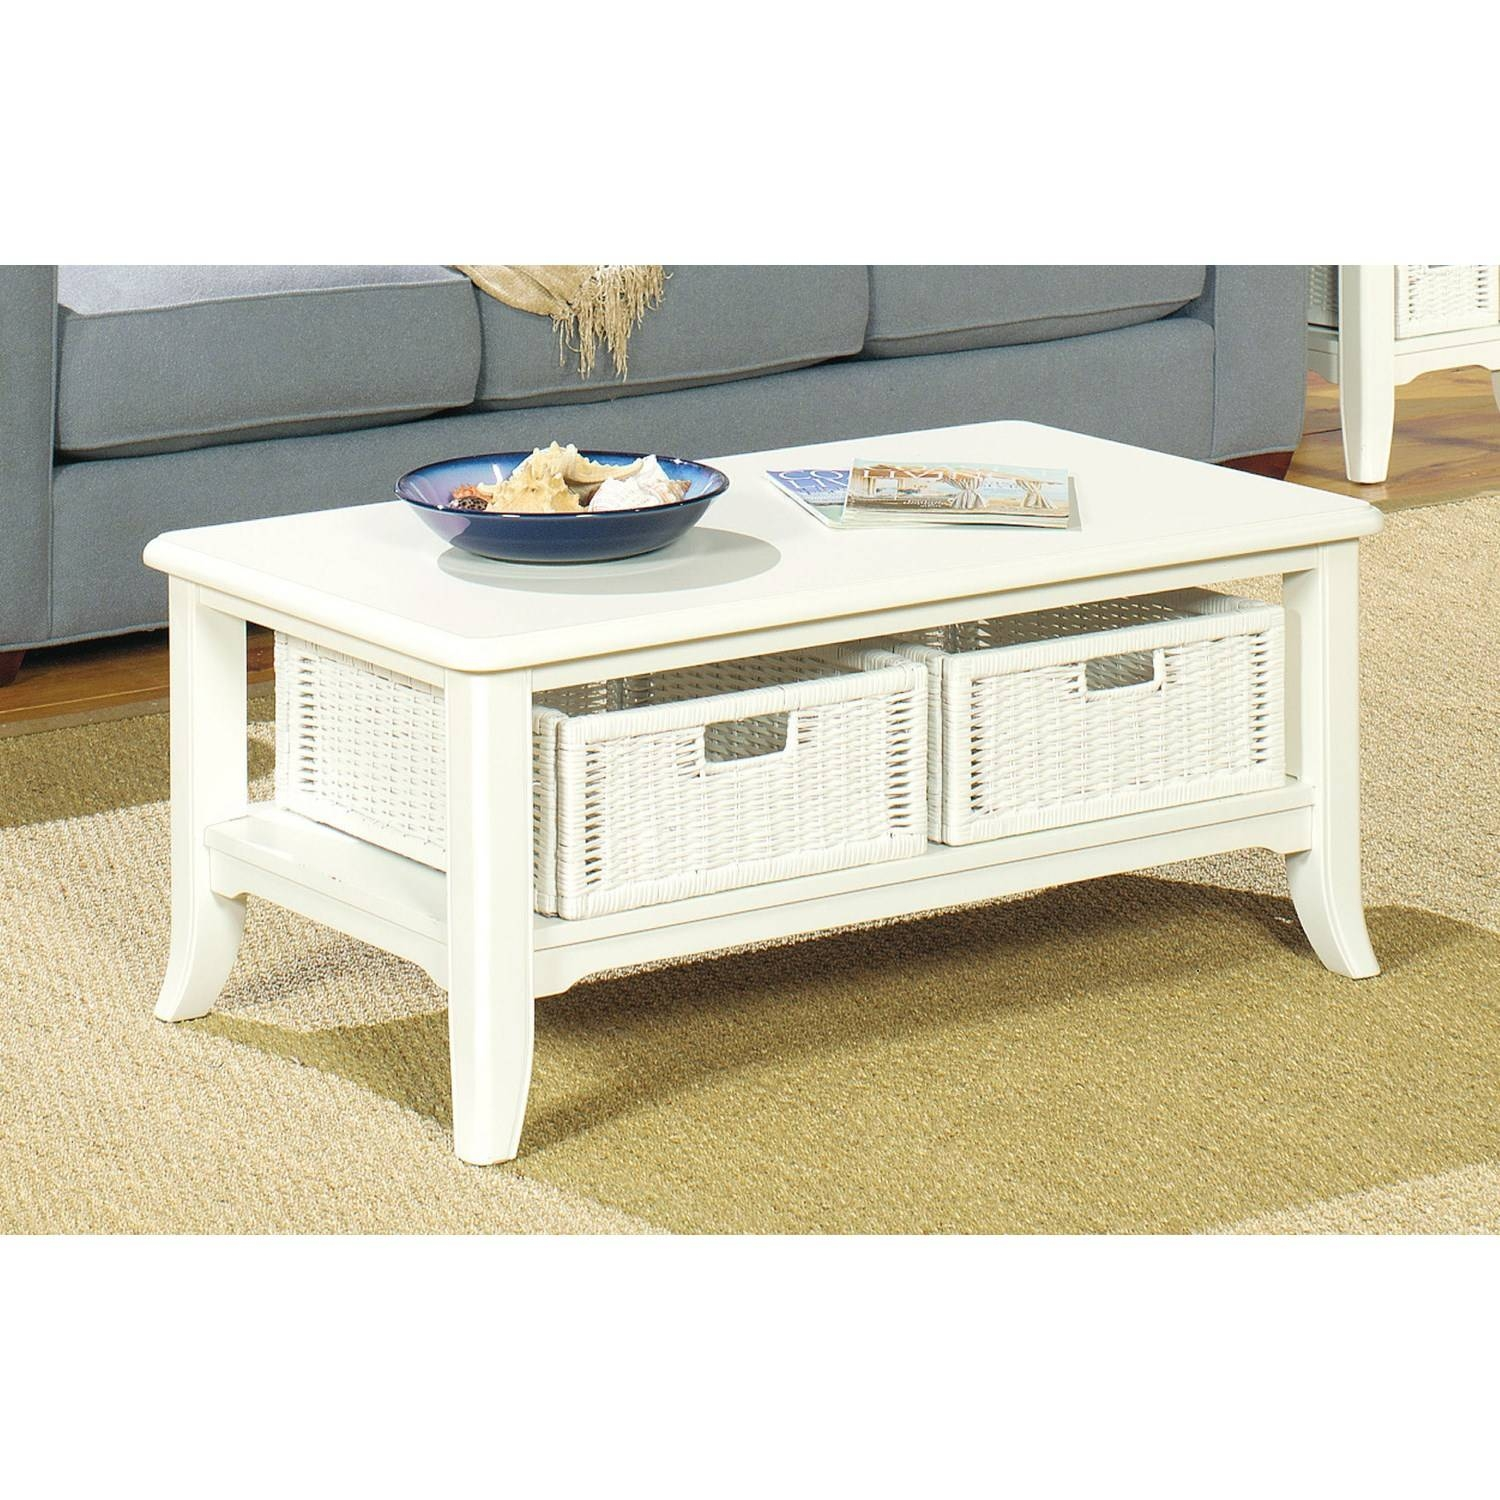 2017 Best of Retro White Coffee Tables